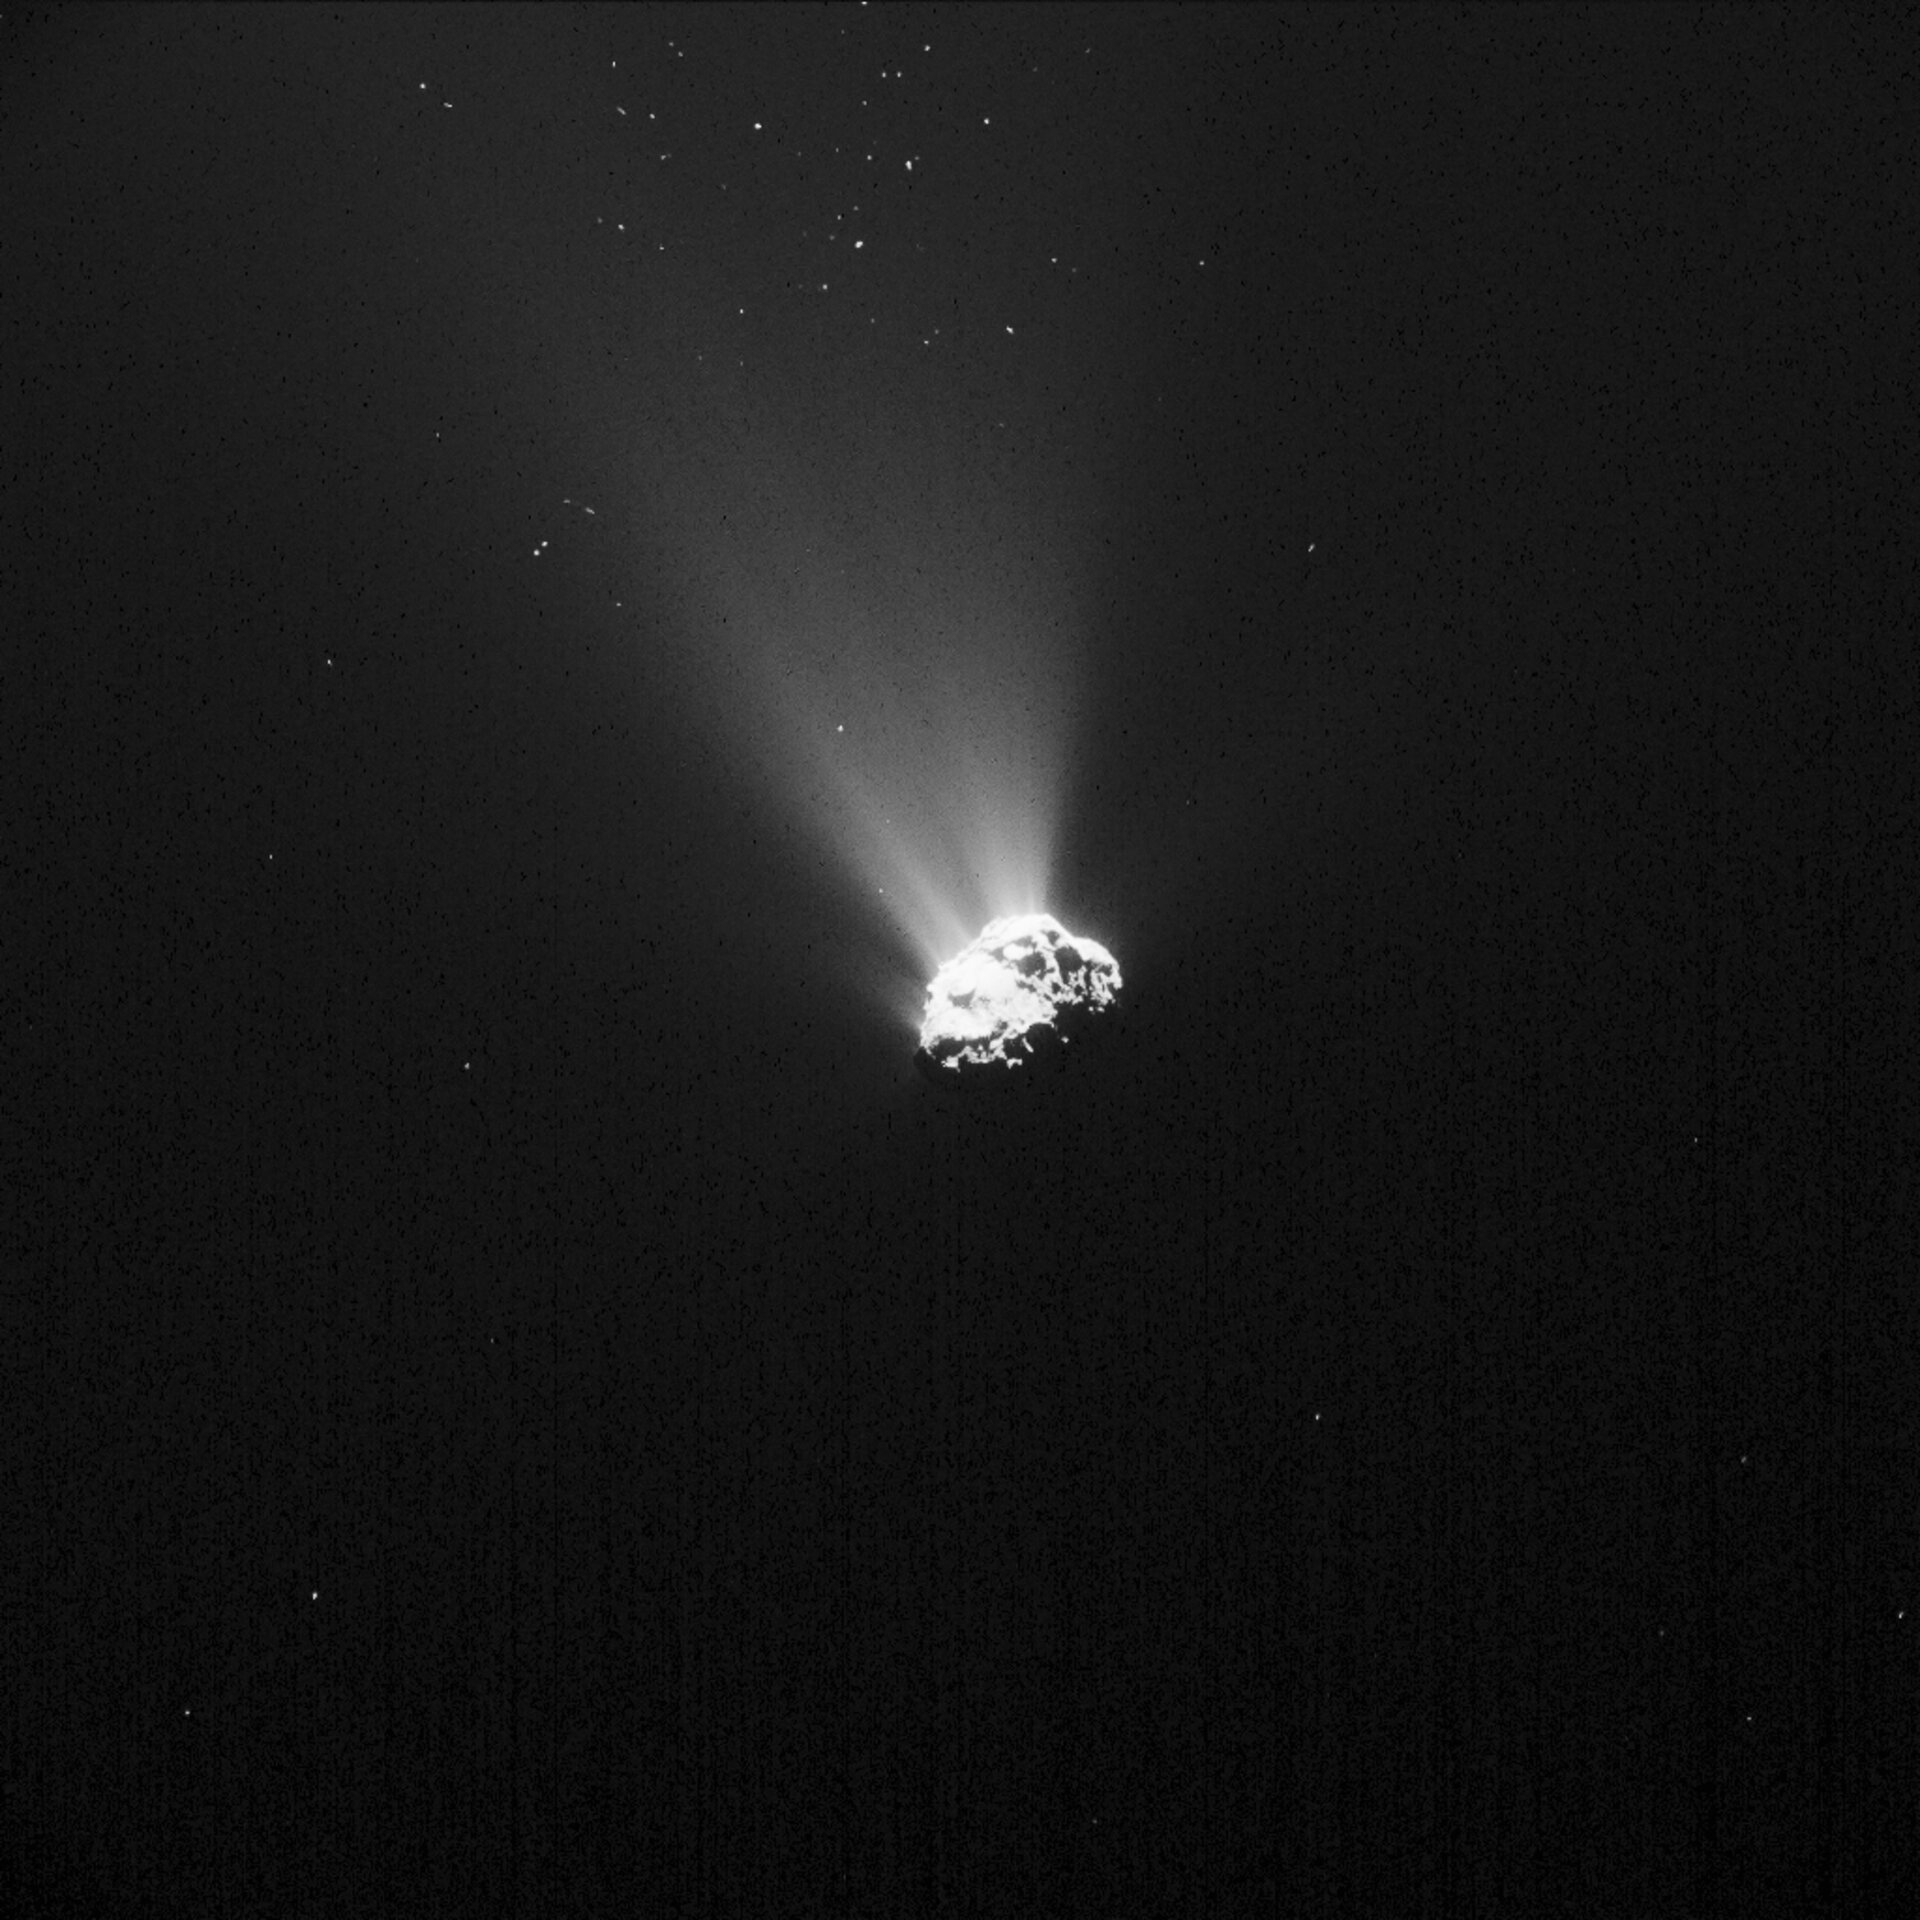 Comet on 5 September 2015 – NavCam